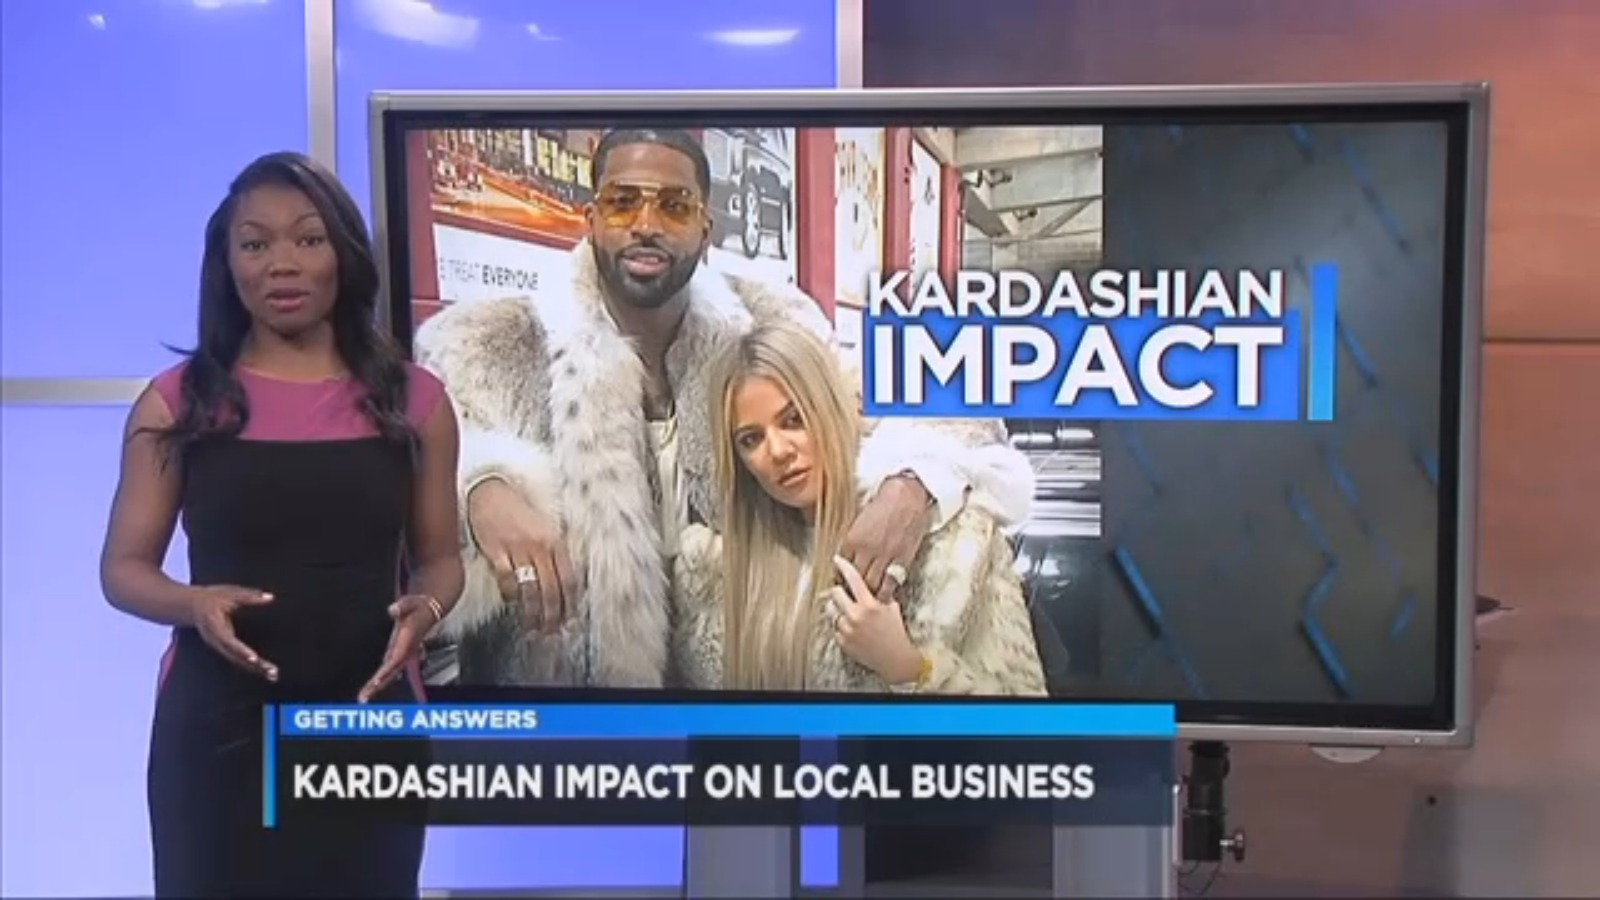 (VIDEO) Kardashian impact on area businesses in Cleveland?